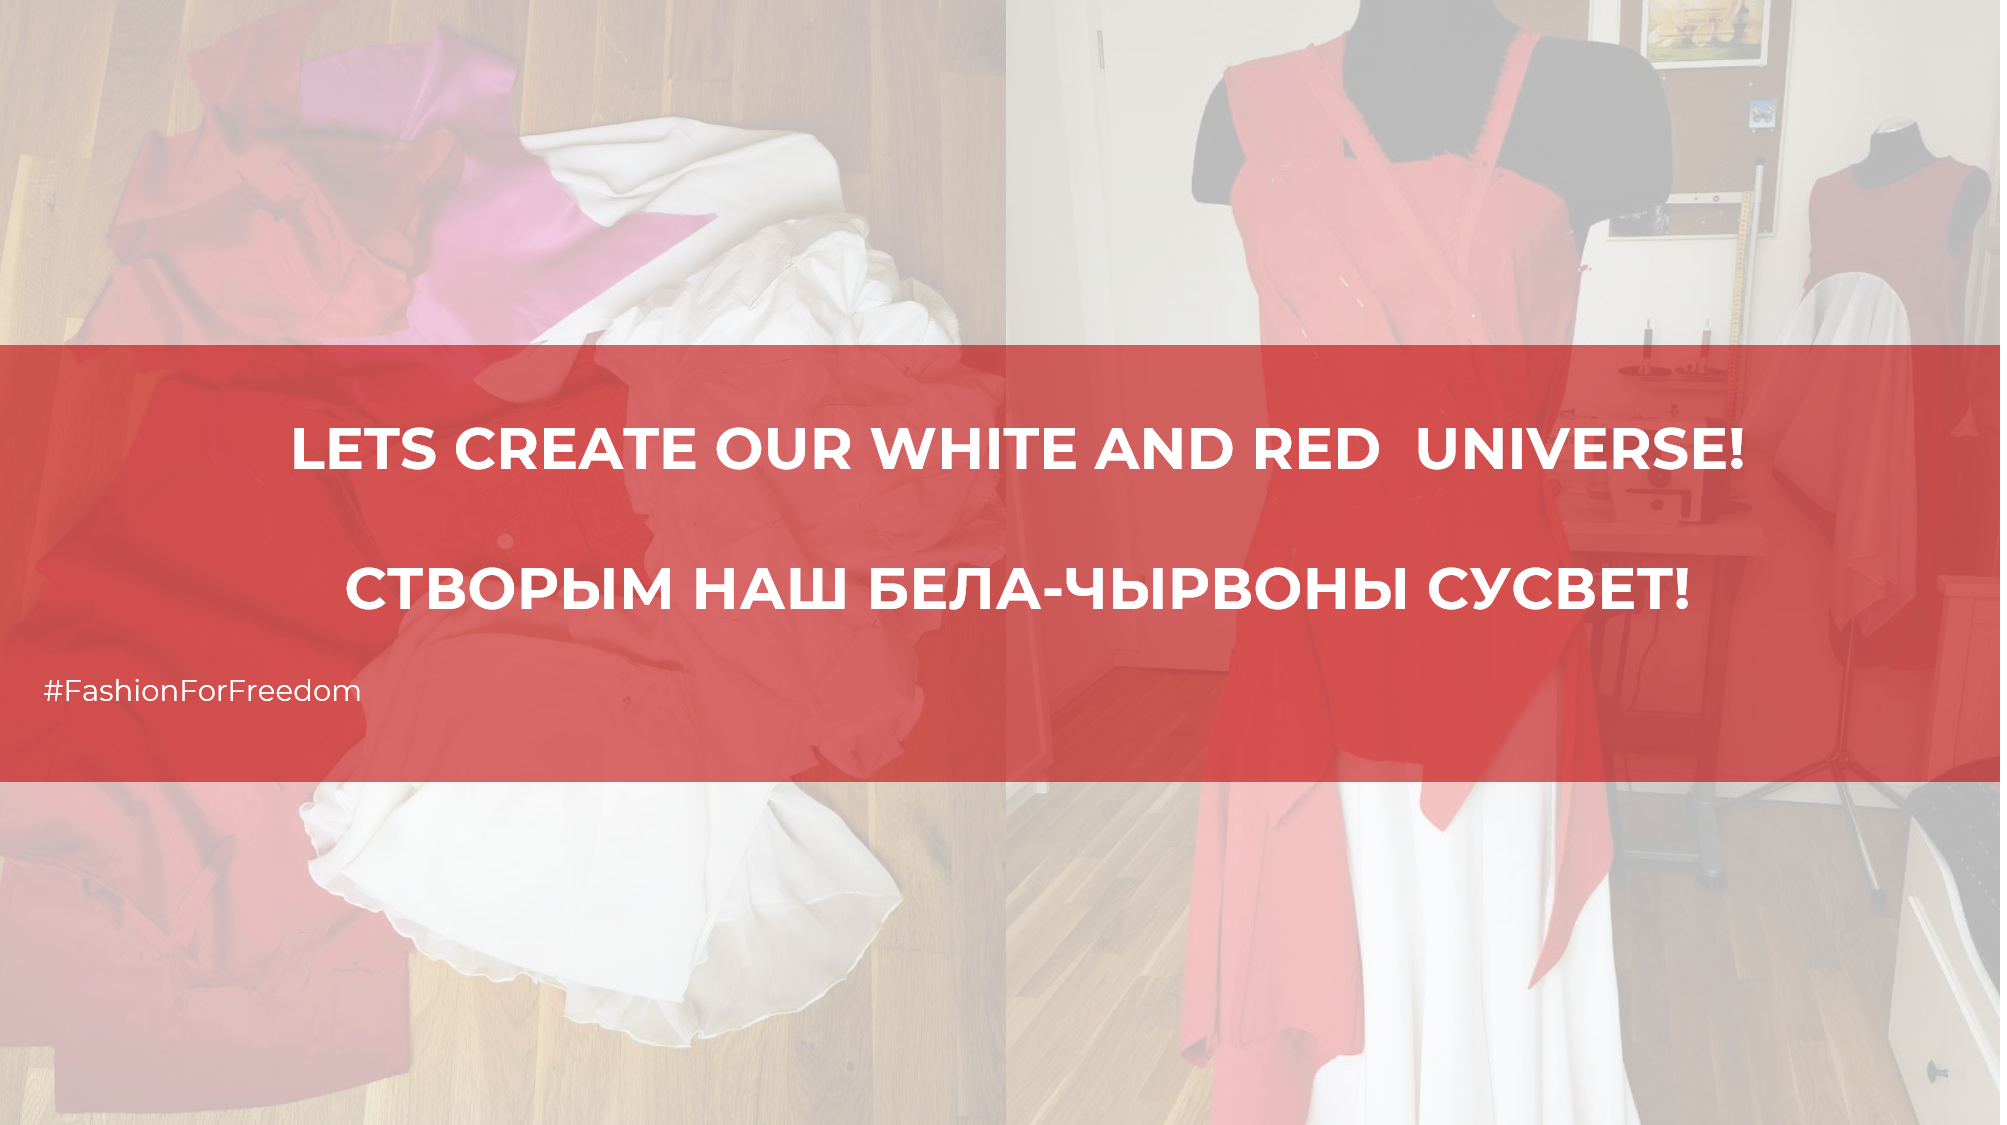 LET'S CREATE OUR RED AND WHITE UNIVERSE!